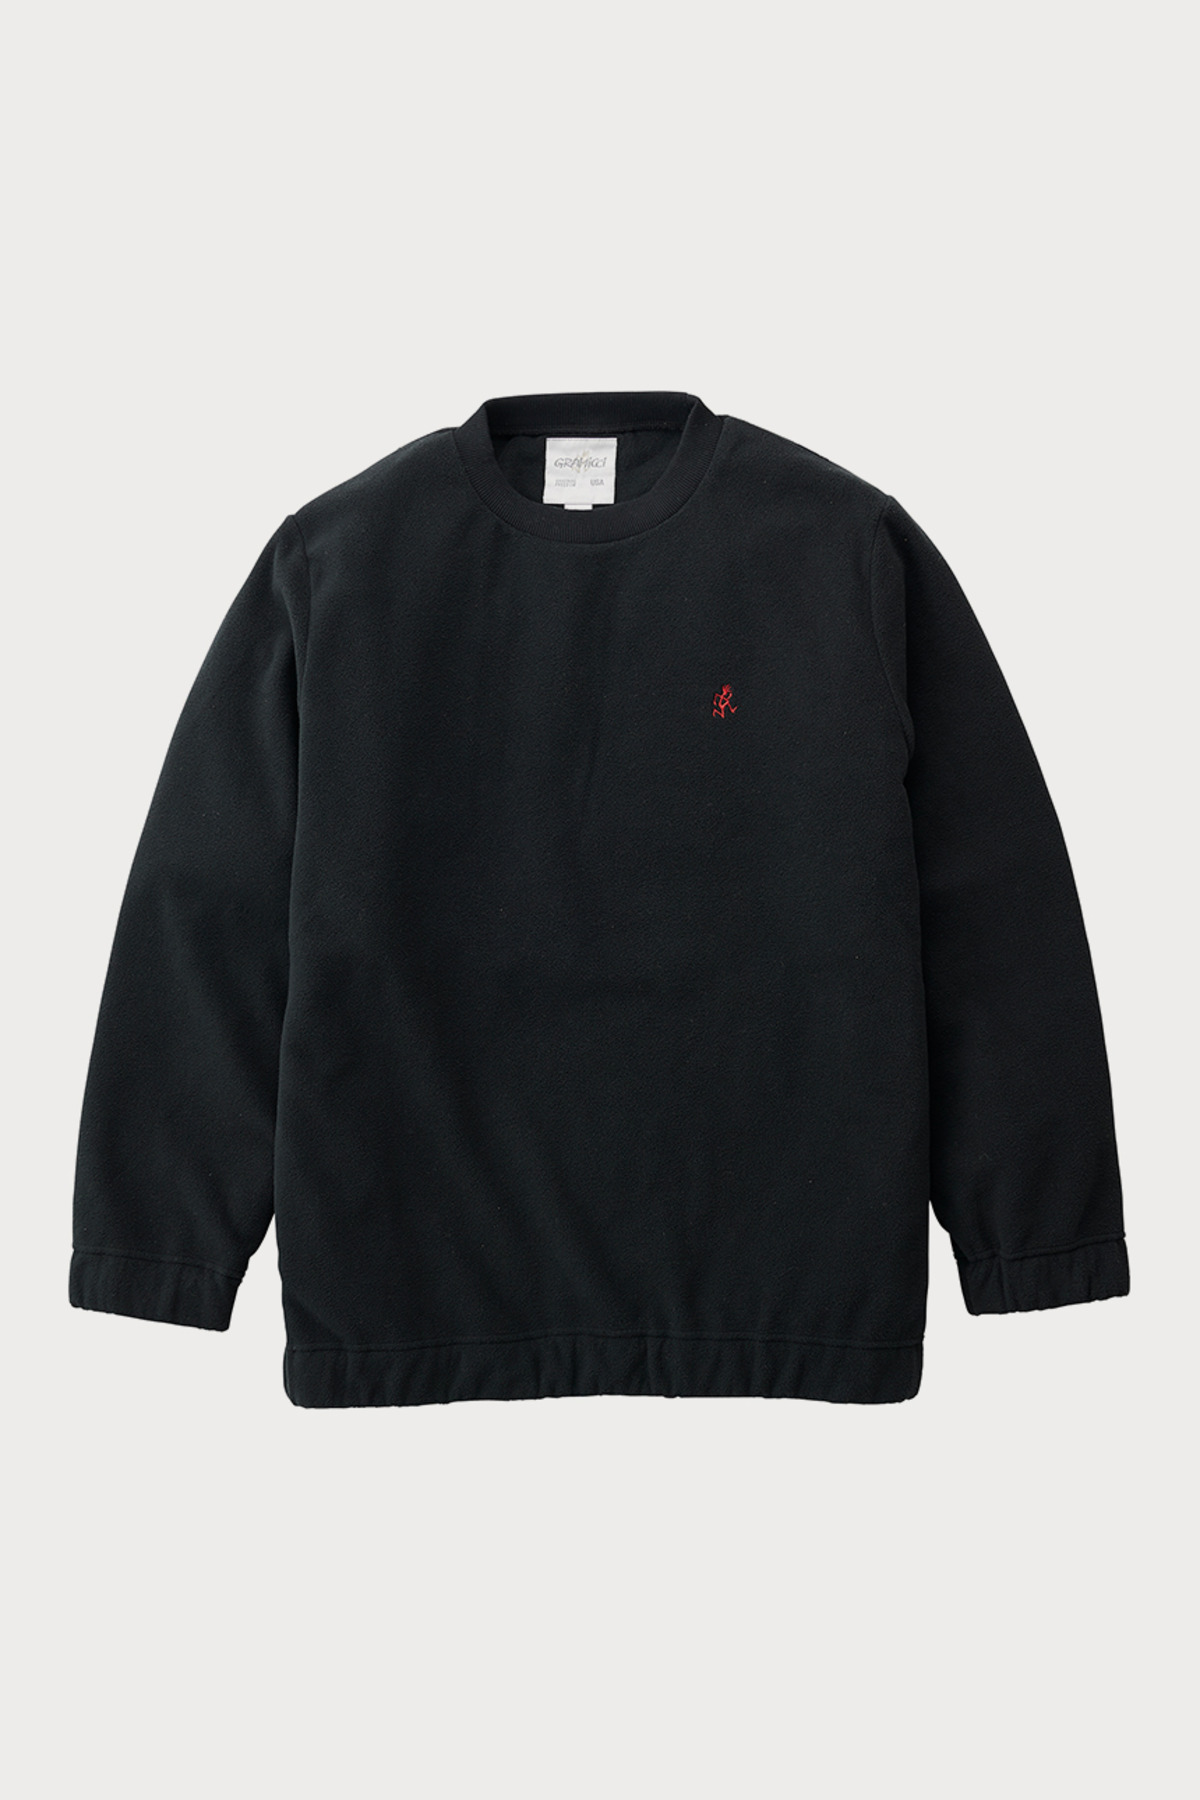 FLEECE CREW NECK BLACK